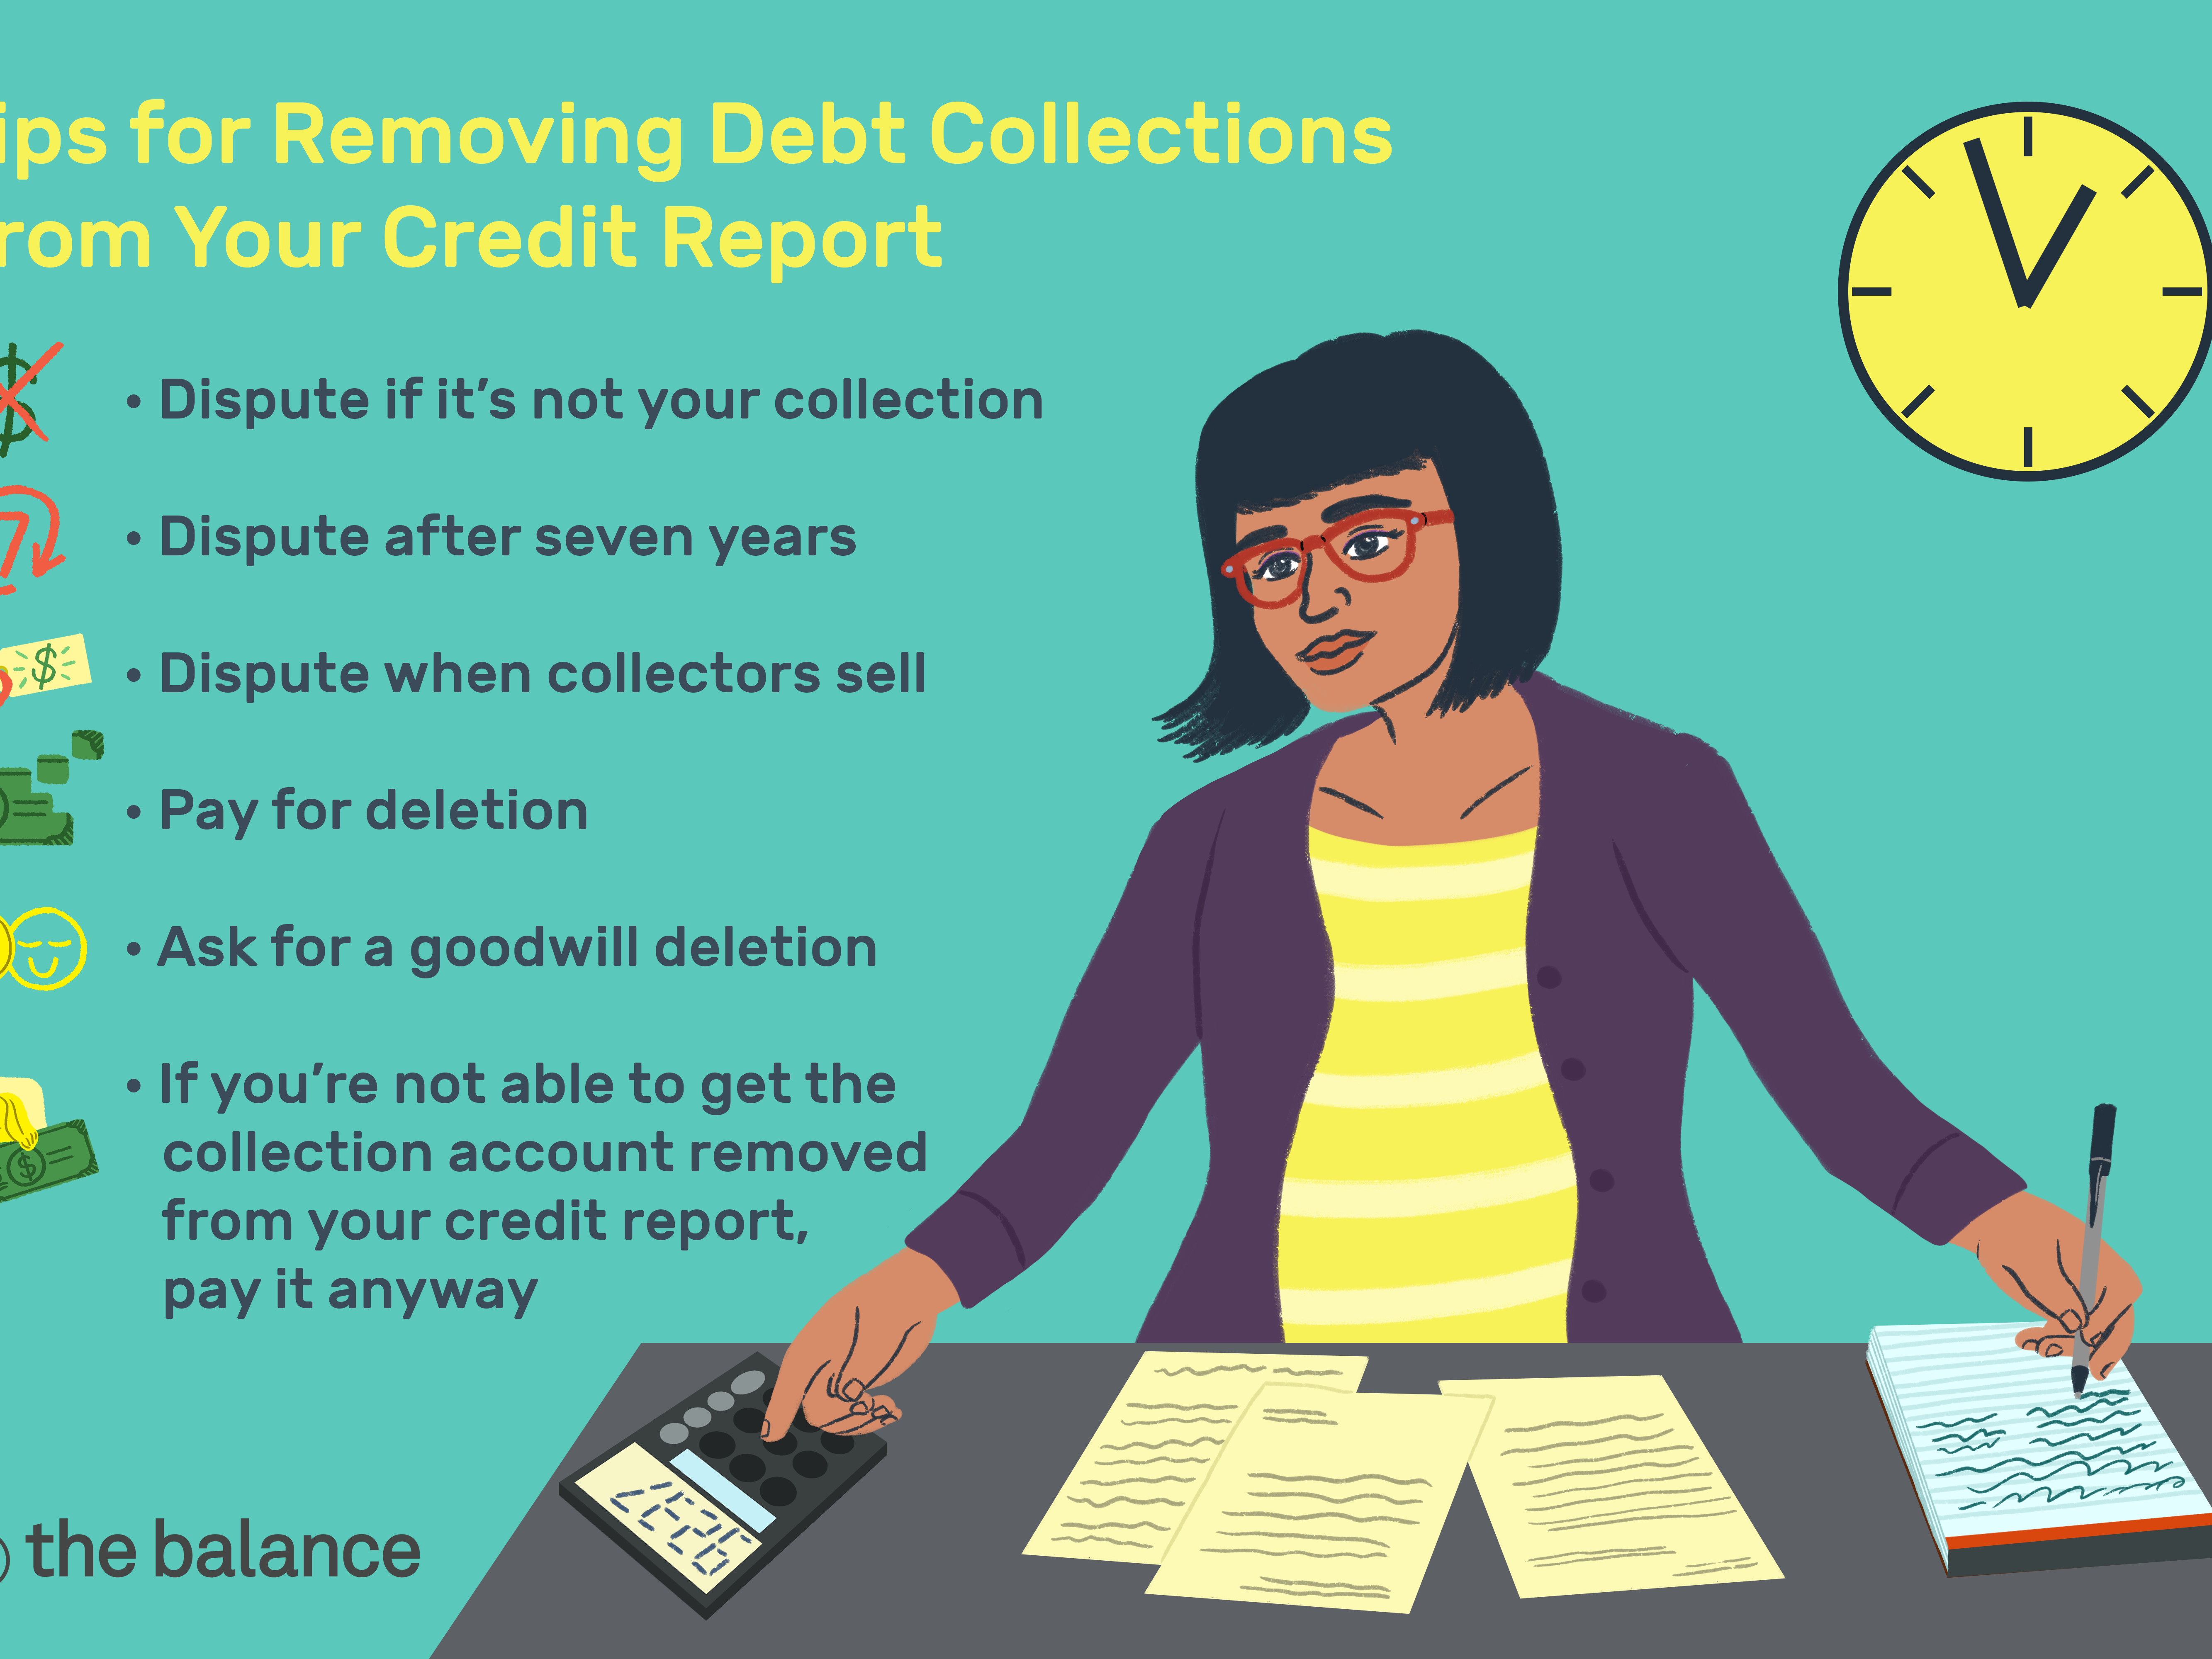 Remove Debt Collections From Your Credit Report